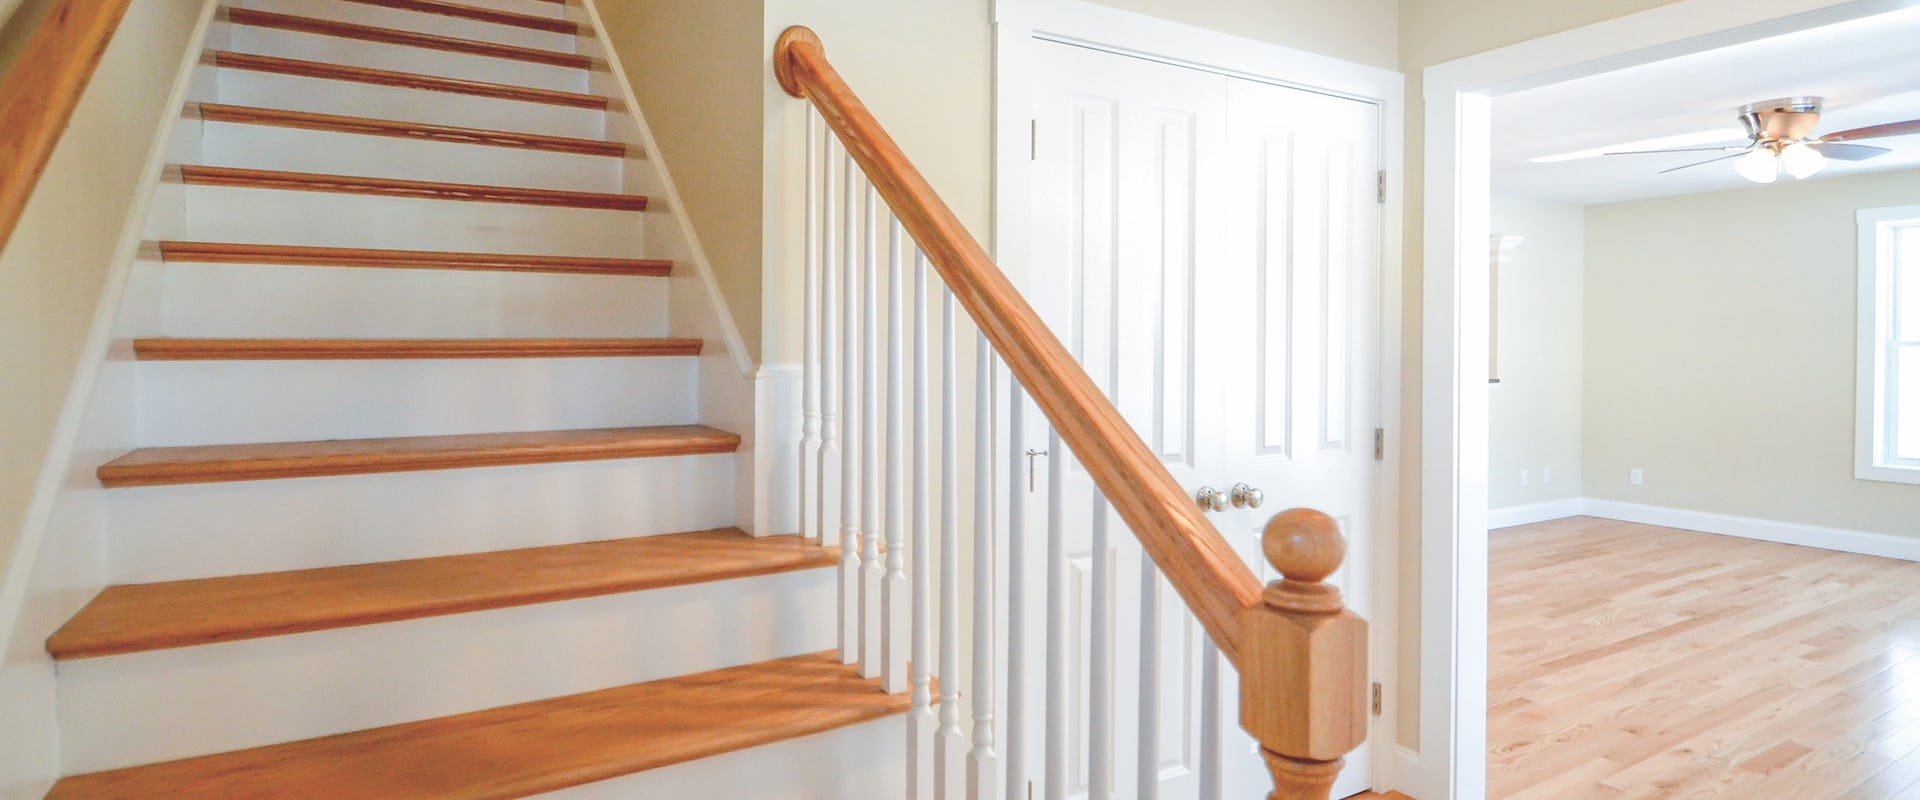 stairs in entry way to new home